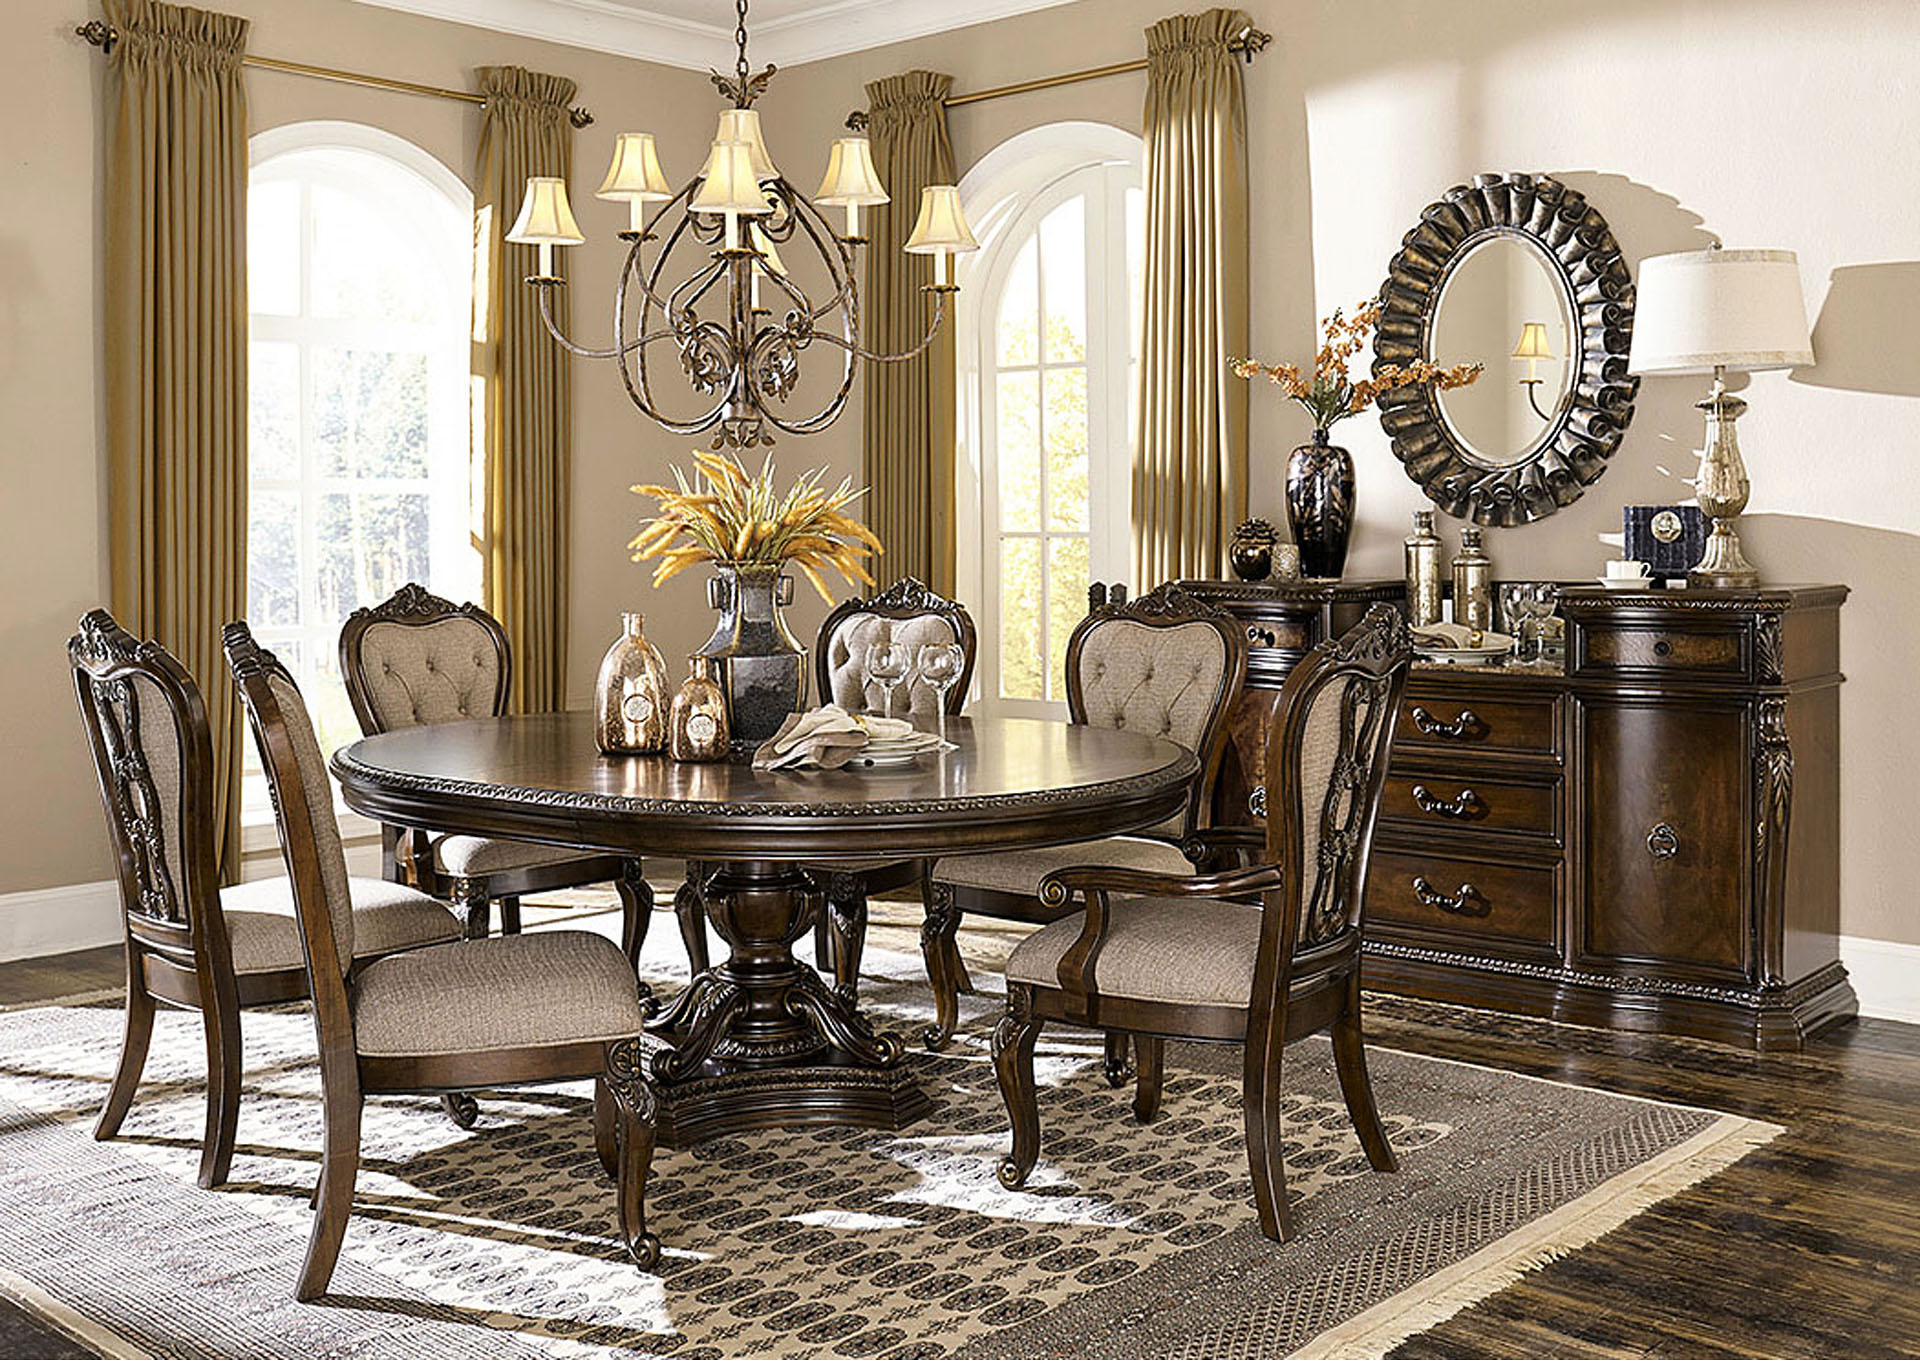 Round/Oval Pedestal Dining Table,Homelegance